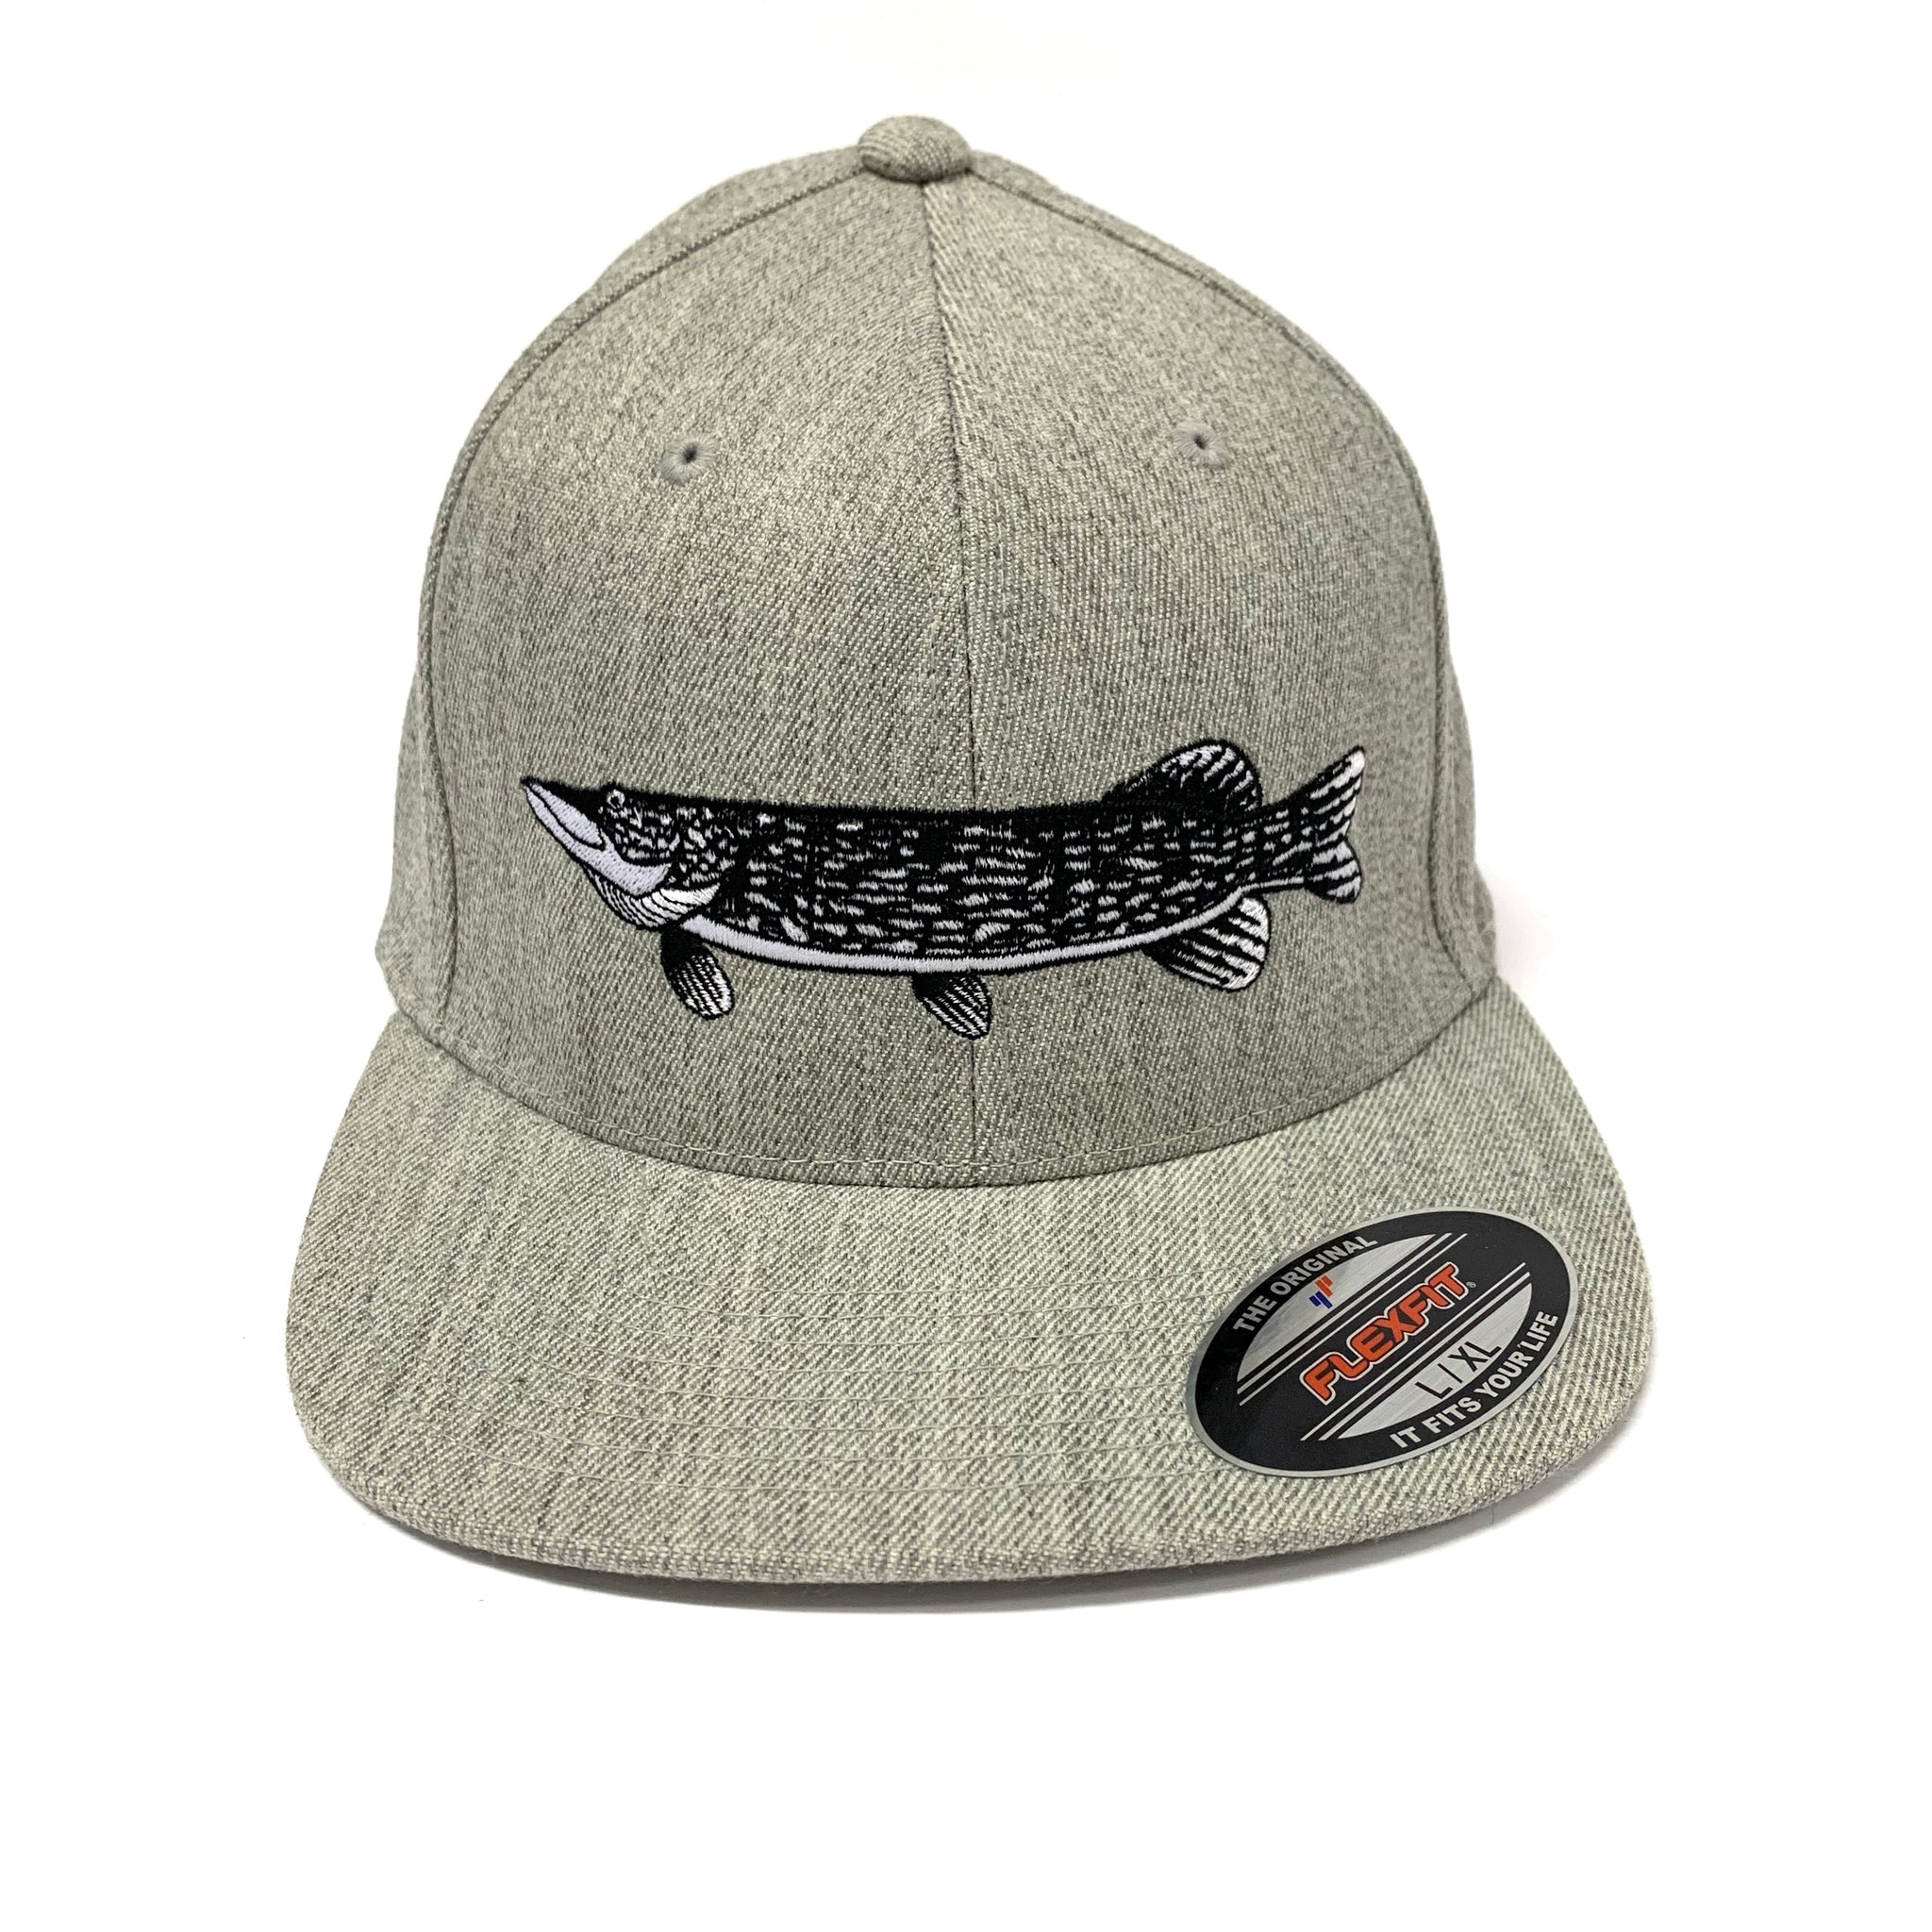 PIKE LOGO FLEXFIT FITTED